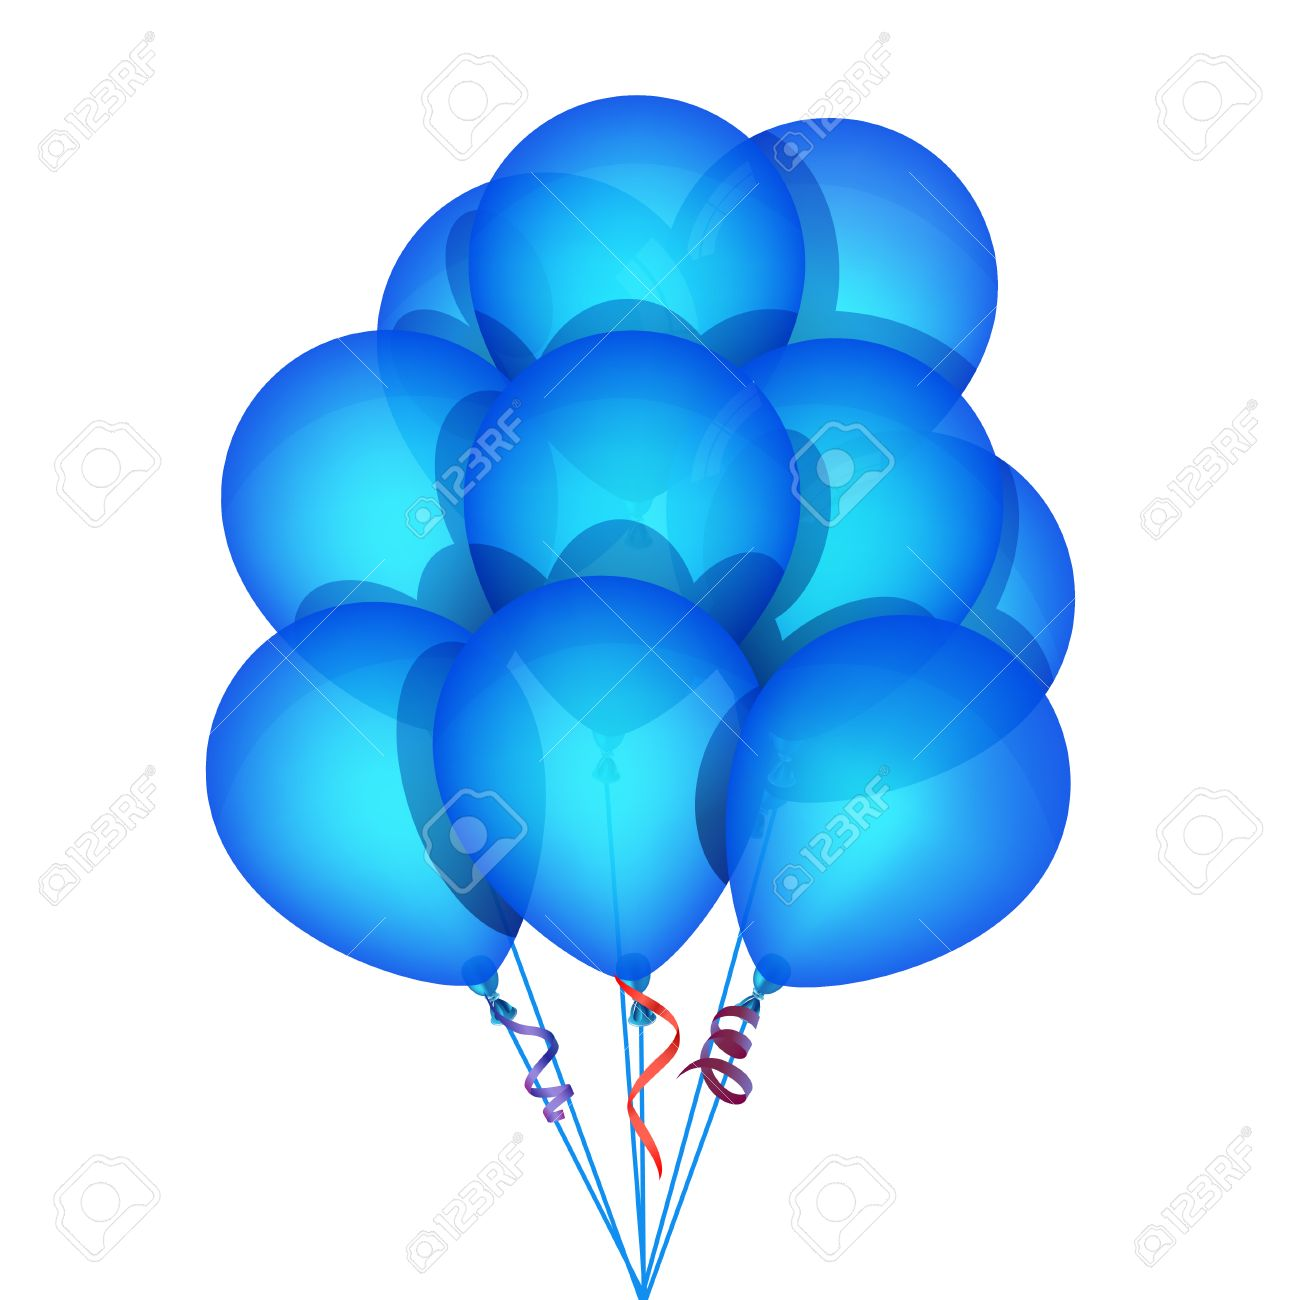 Green and blue balloons - Blue Balloons Blue Party Balloons Illustration